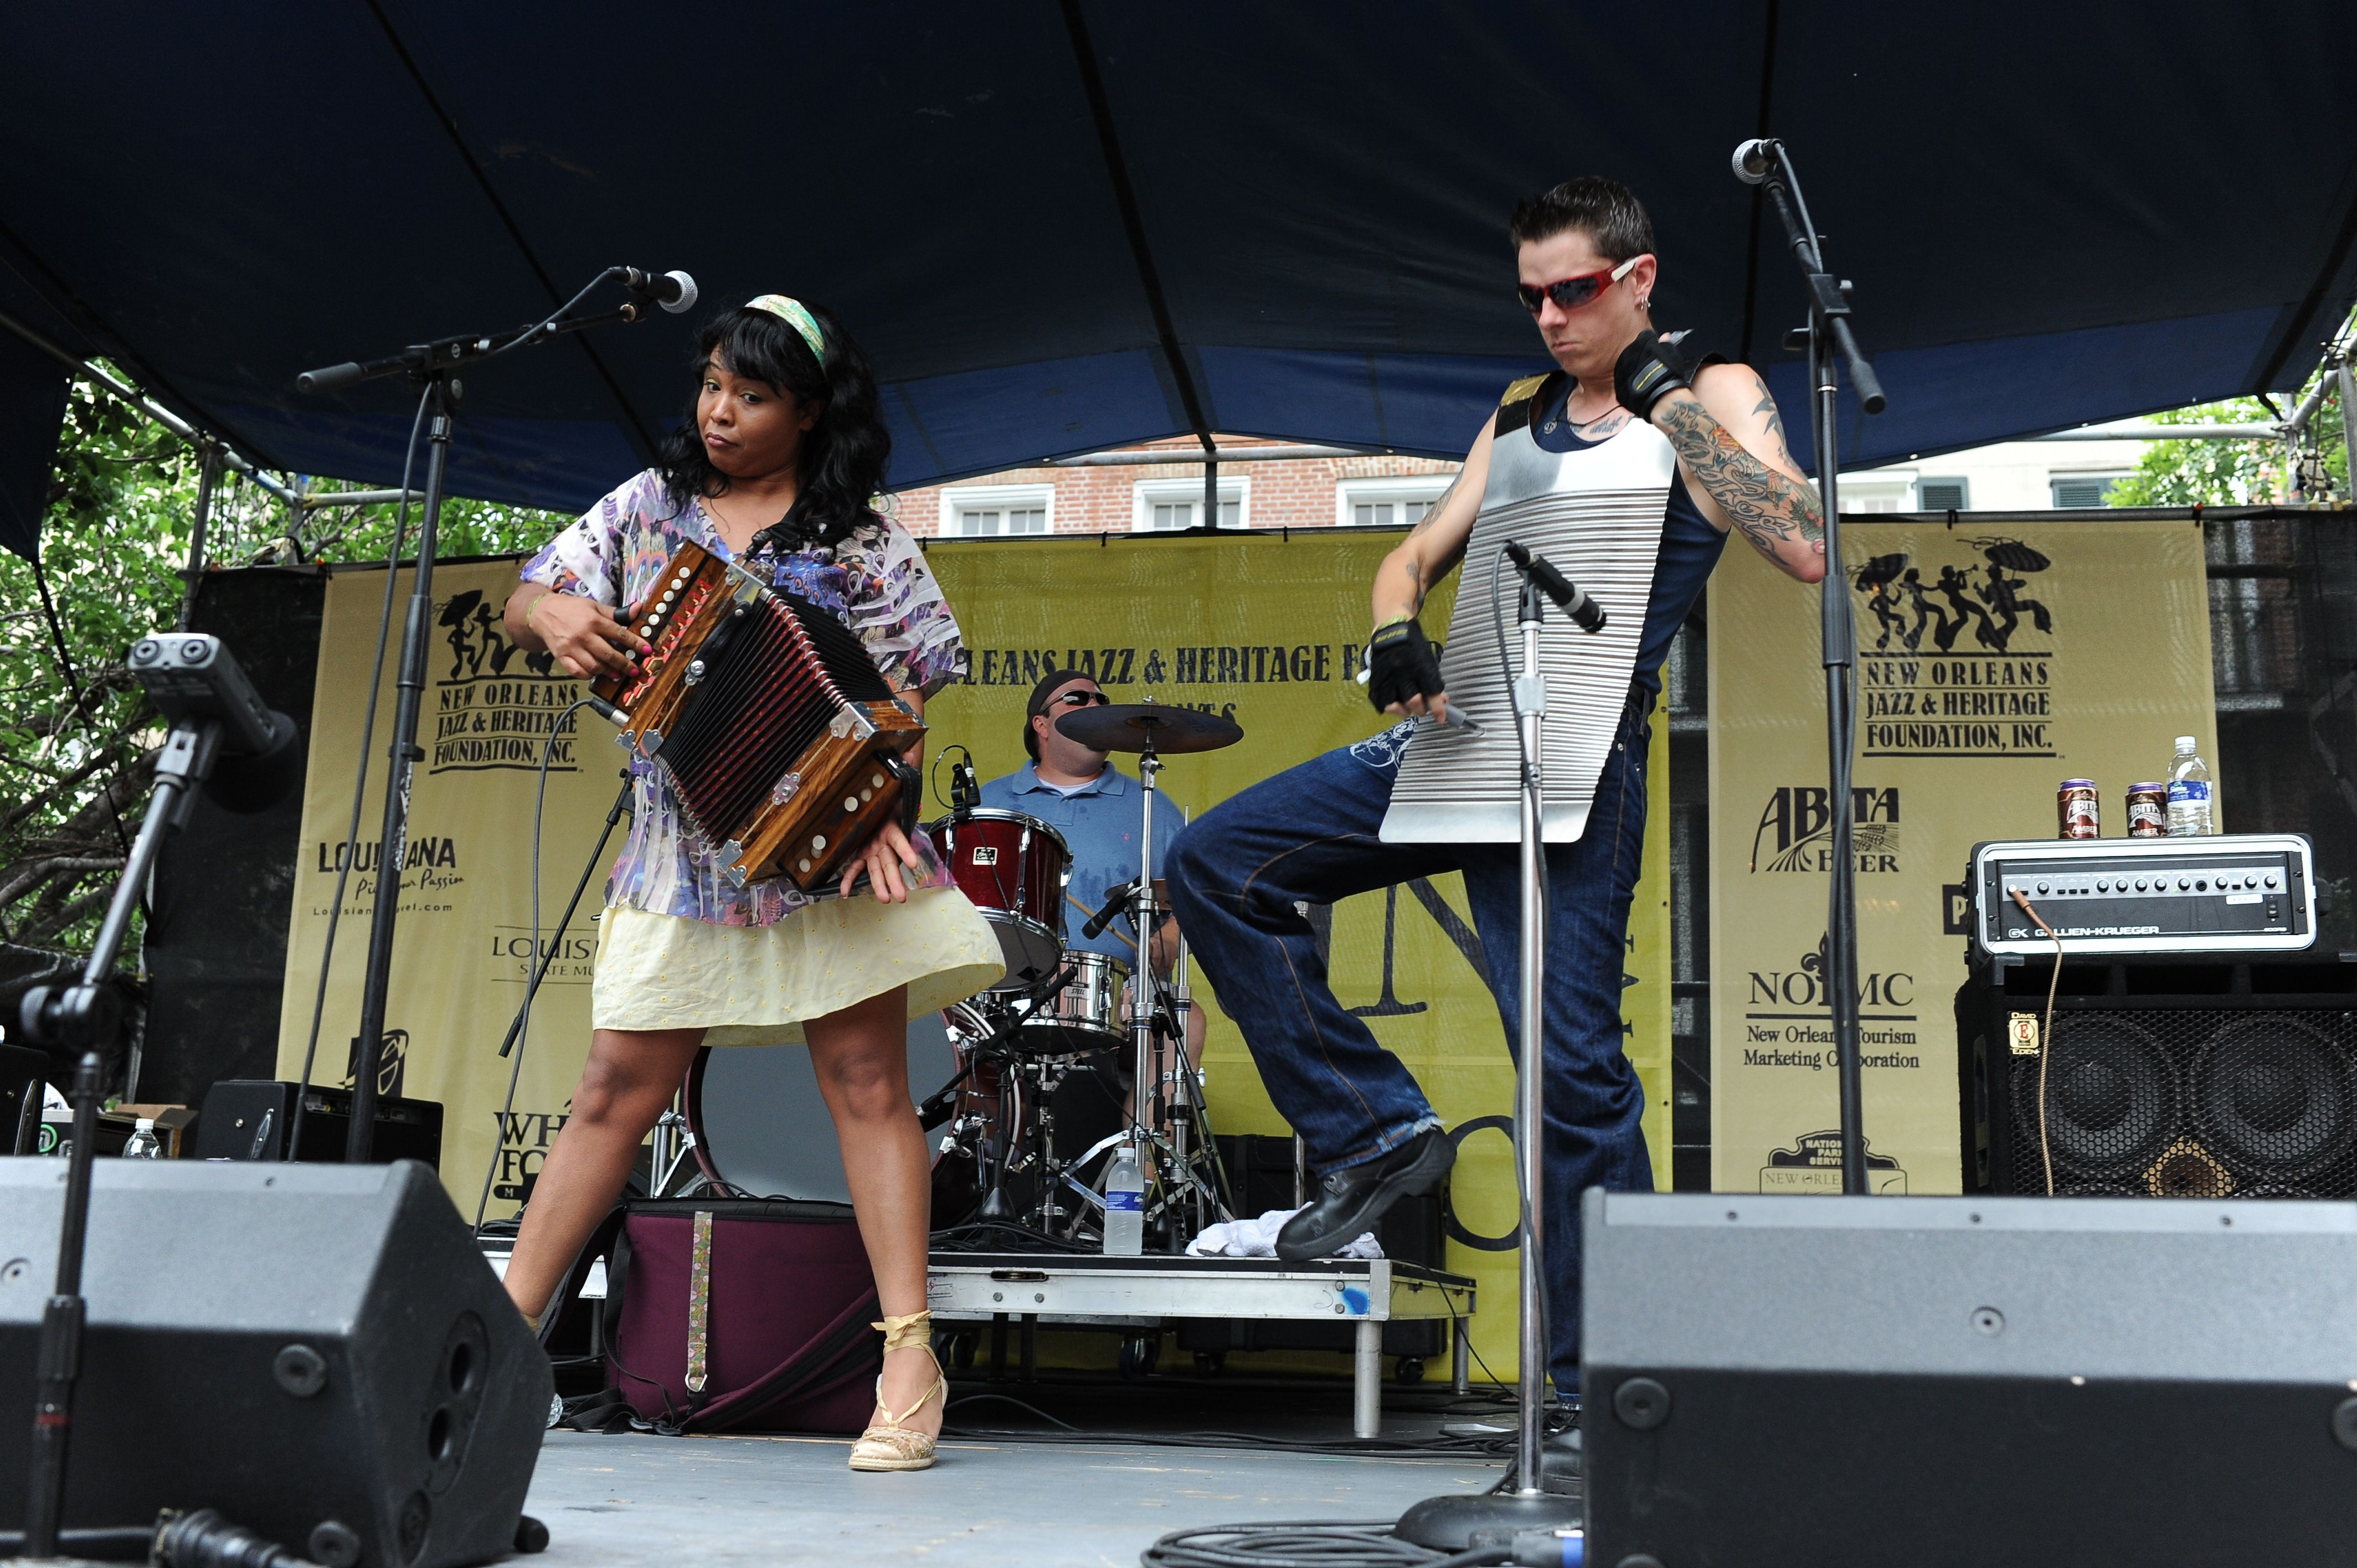 Two-step to the Louisiana Cajun Zydeco Festival June 18 and 19!